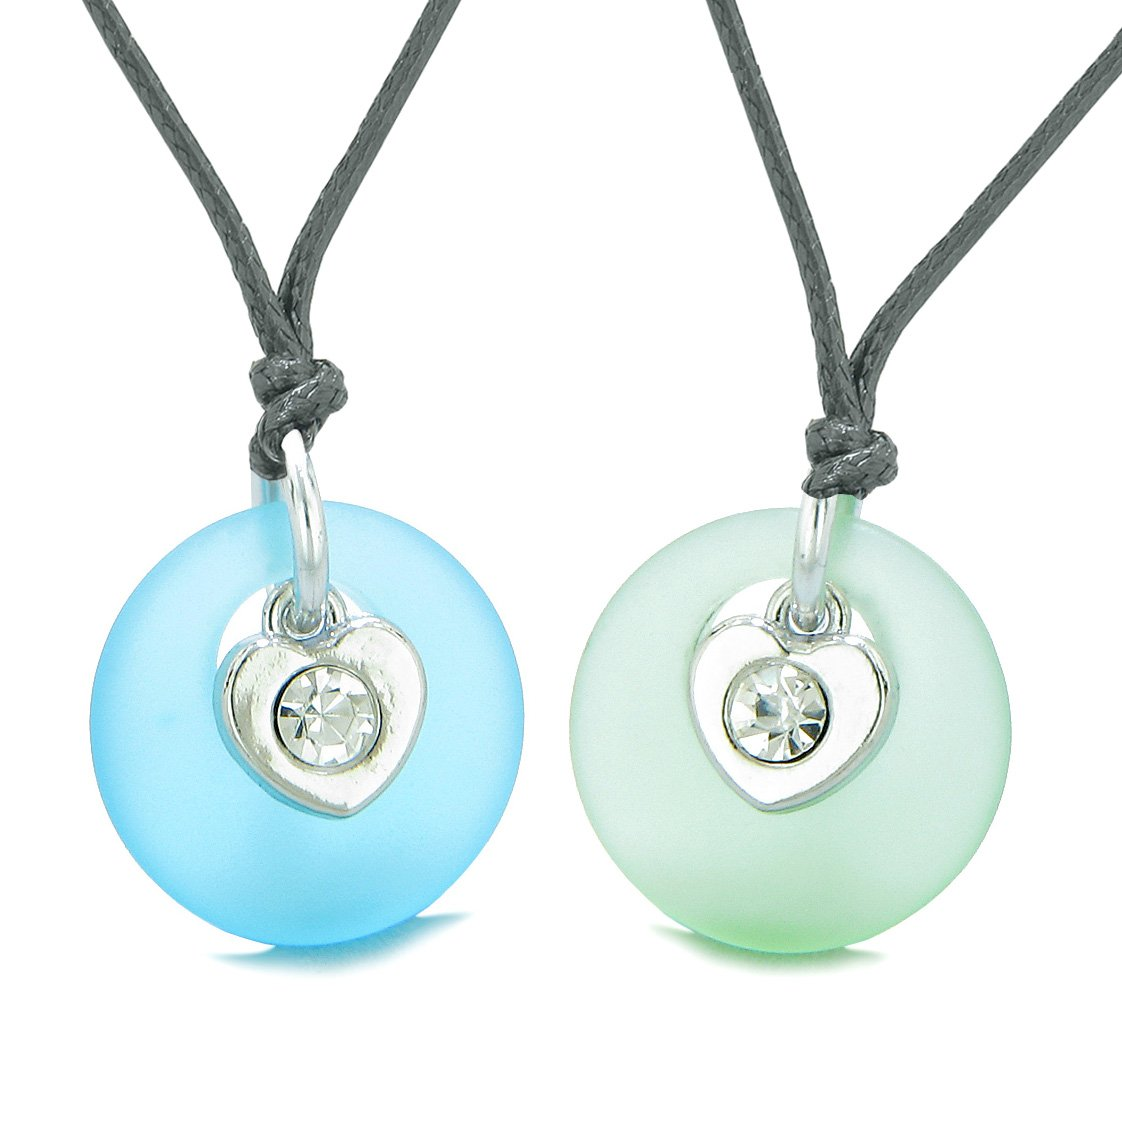 Sea Glass Lucky Donut Crystal Heart Charm Mint Green Sky Blue Love Couples BFF Set Amulet Necklaces